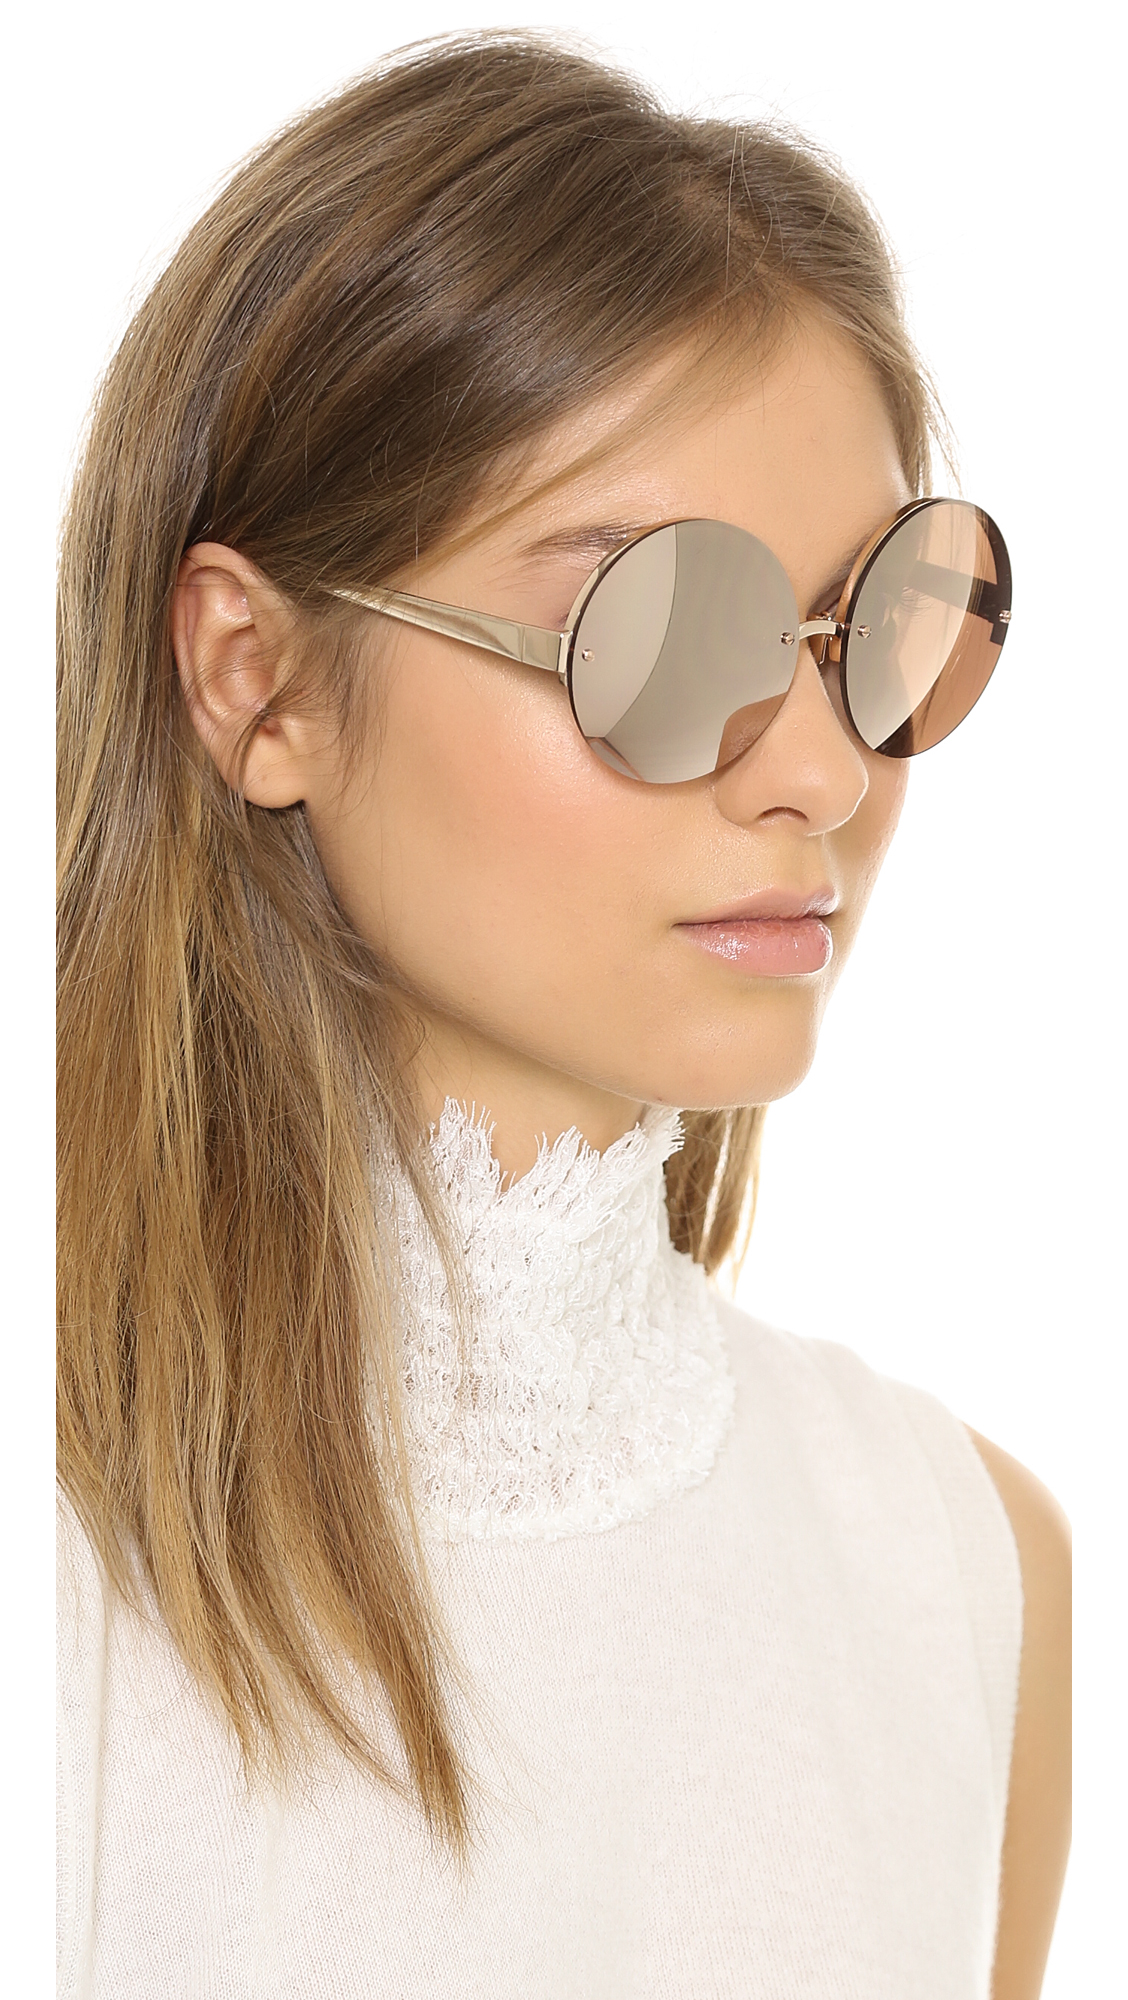 Linda Farrow Uk | Linda Farrow New York | Linda Farrow Sunglasses